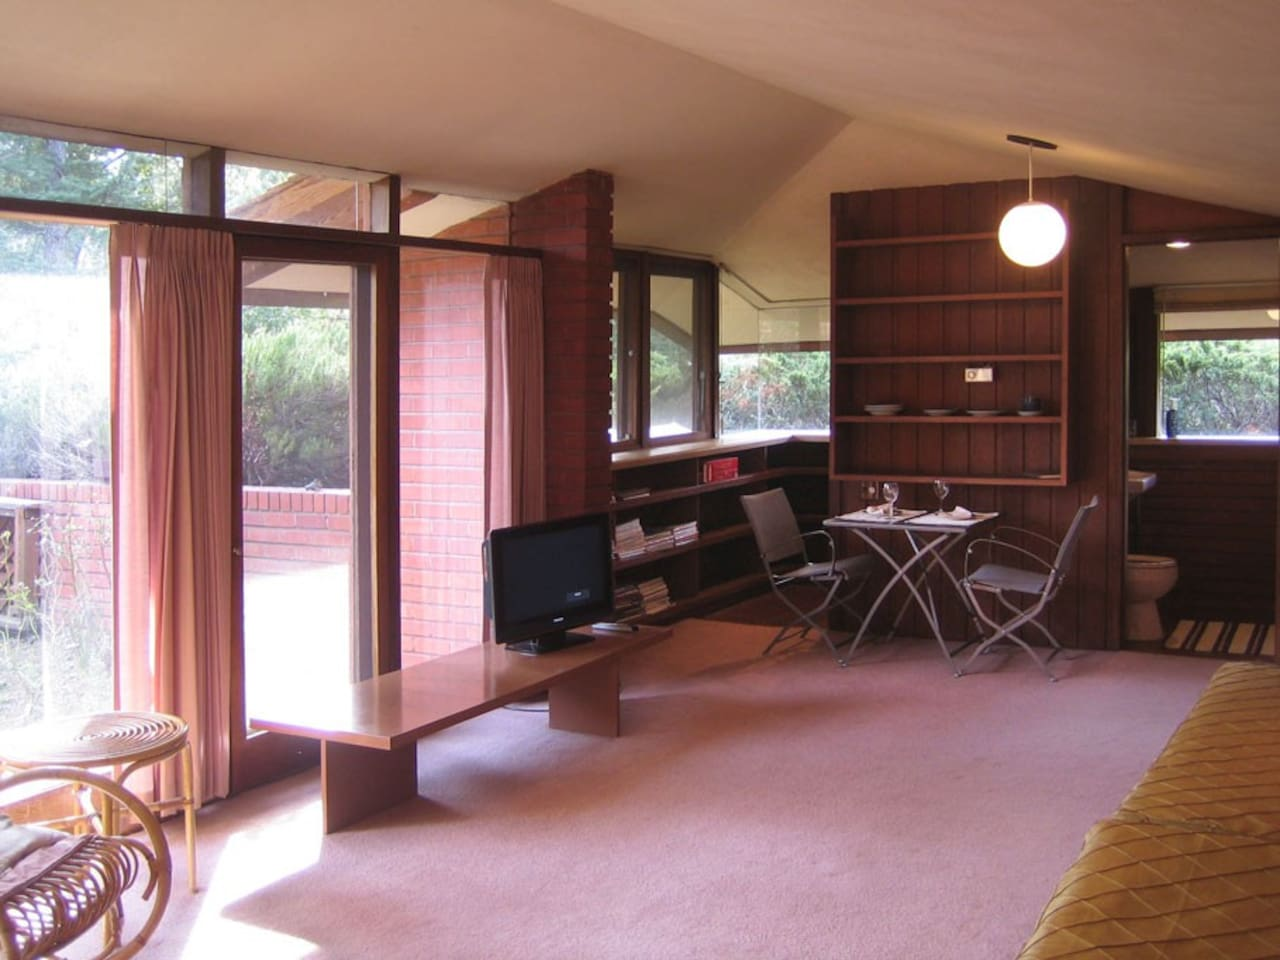 frank lloyd wright style guesthouse houses for rent in los altos